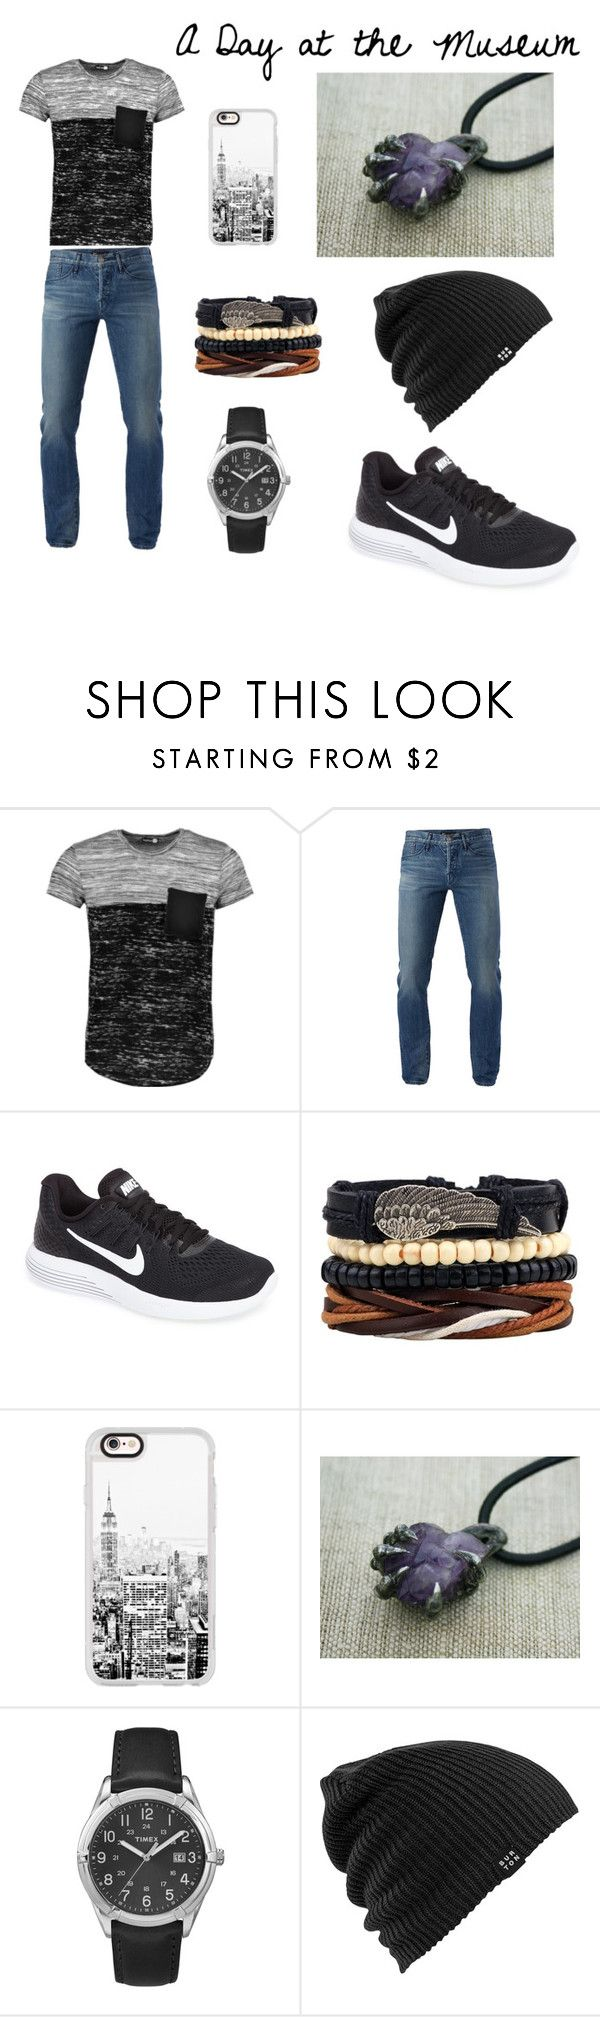 """""""A Day at the Museum"""" by maria-johnson-4 ❤ liked on Polyvore featuring Boohoo, 3x1, NIKE, Casetify, Timex, Burton, men's fashion and menswear"""